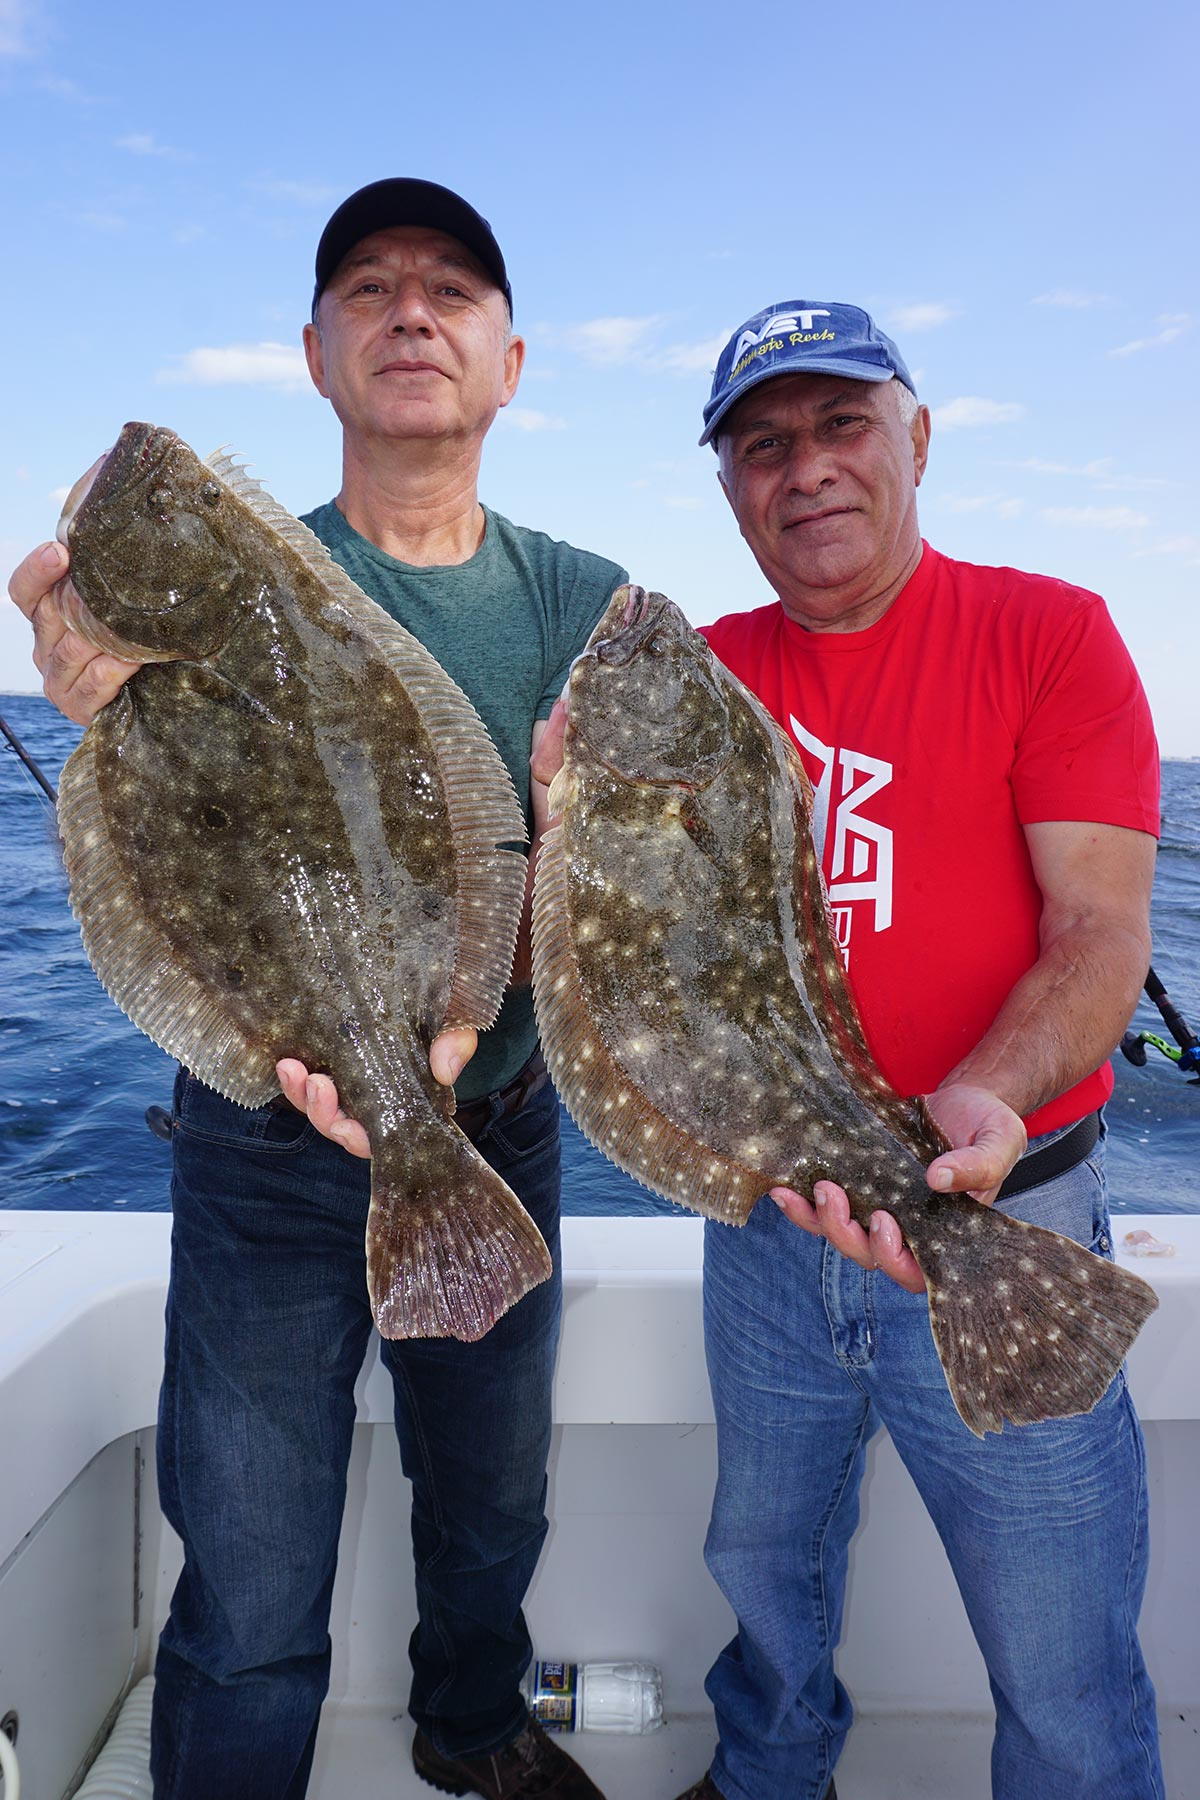 Harry and Sarkis Alajayjyan putting their gear to the test on Northeast fluke.